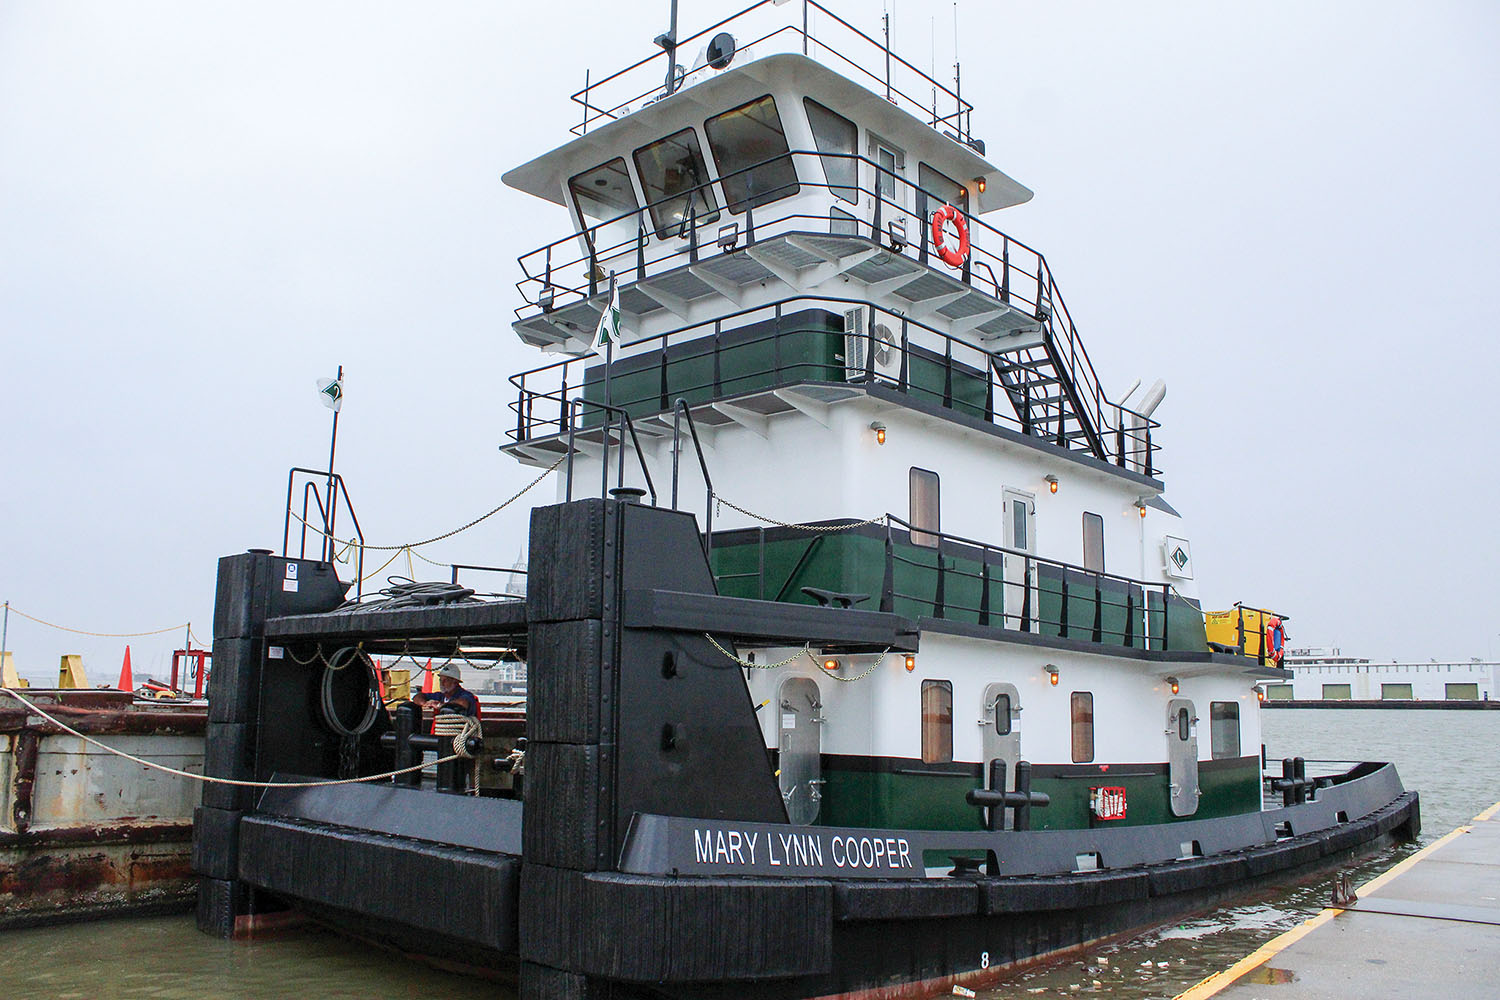 The 1,600 hp. mv. Mary Lynn Cooper is the first of two towboats that Blakeley BoatWorks is building for Cooper Marine & Timberlands Corporation.